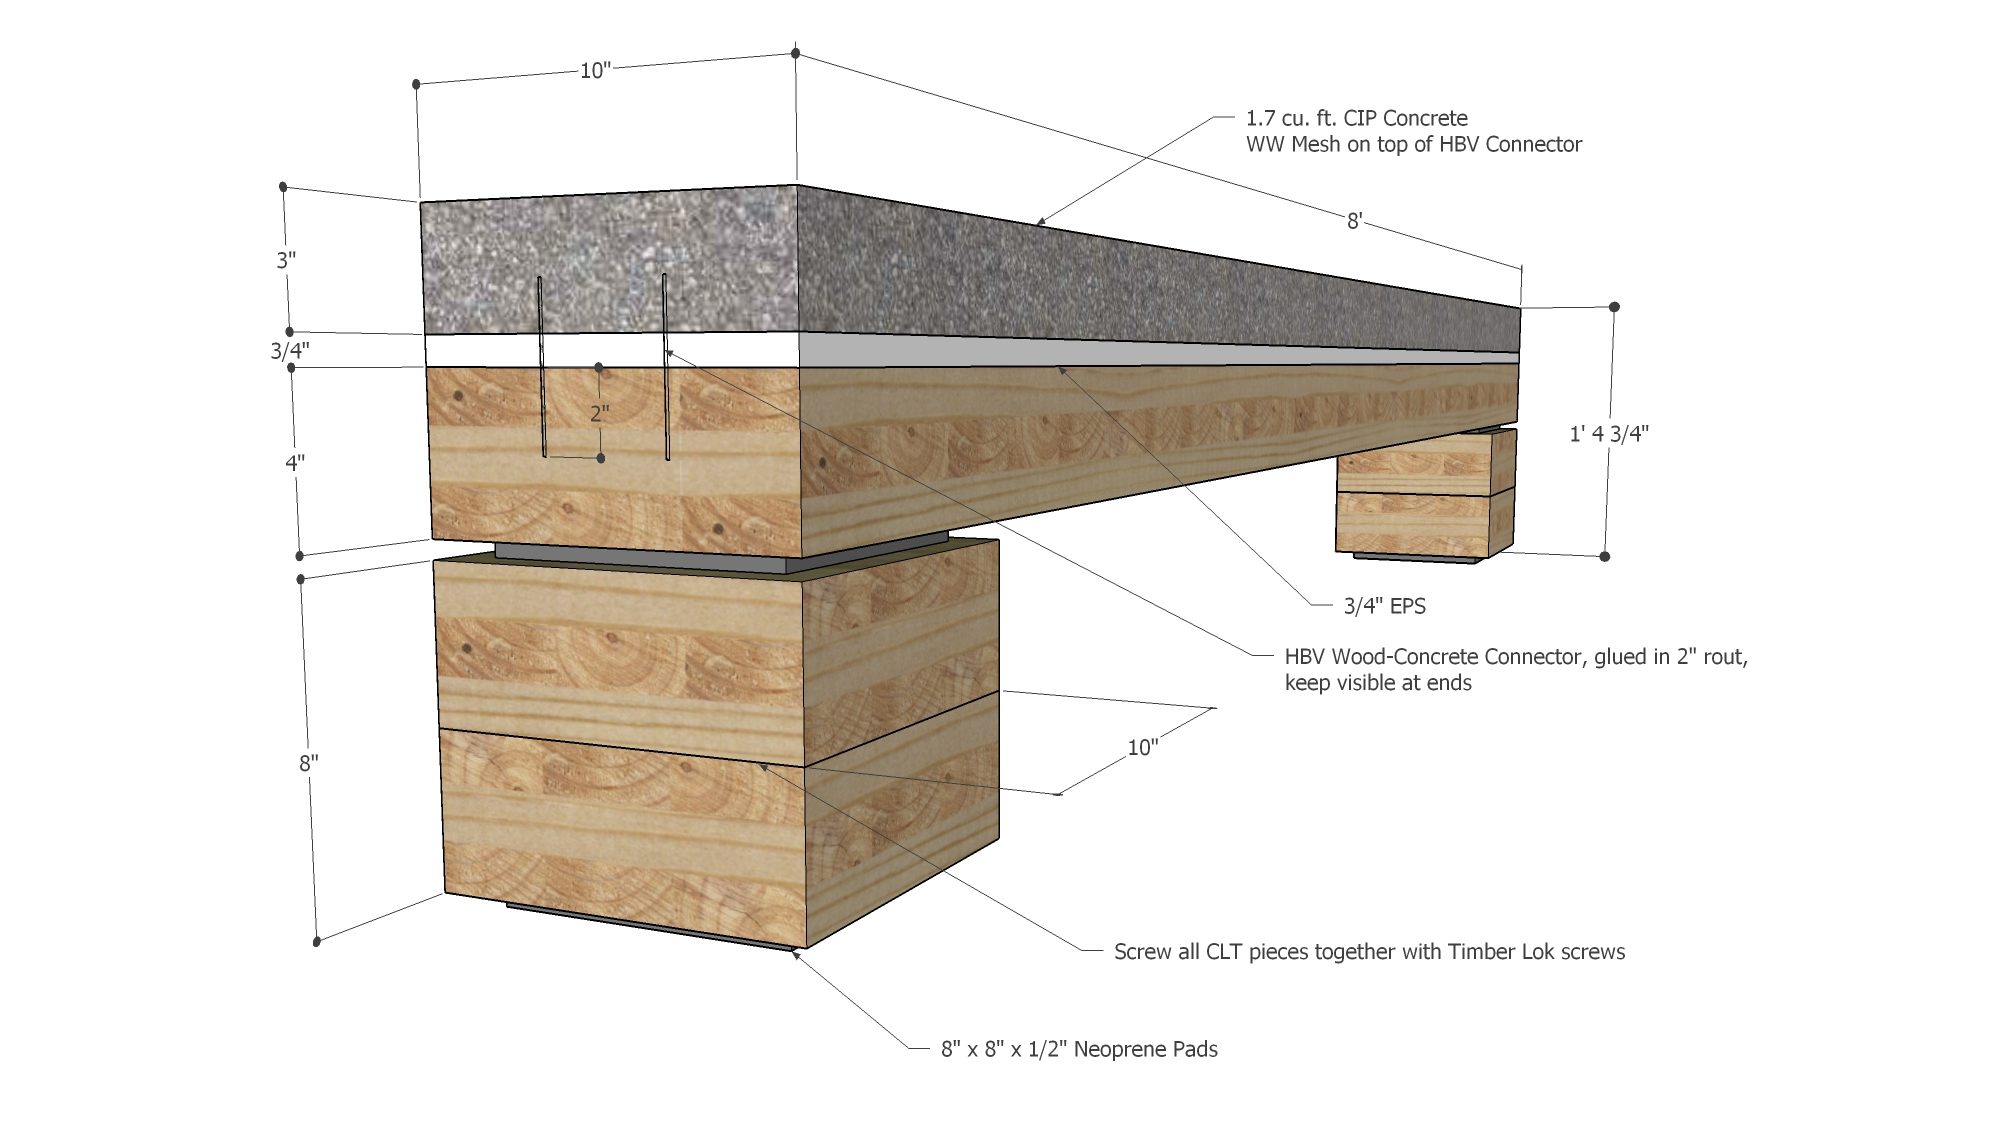 Building A Wood Concrete Floor Mockup Bench And